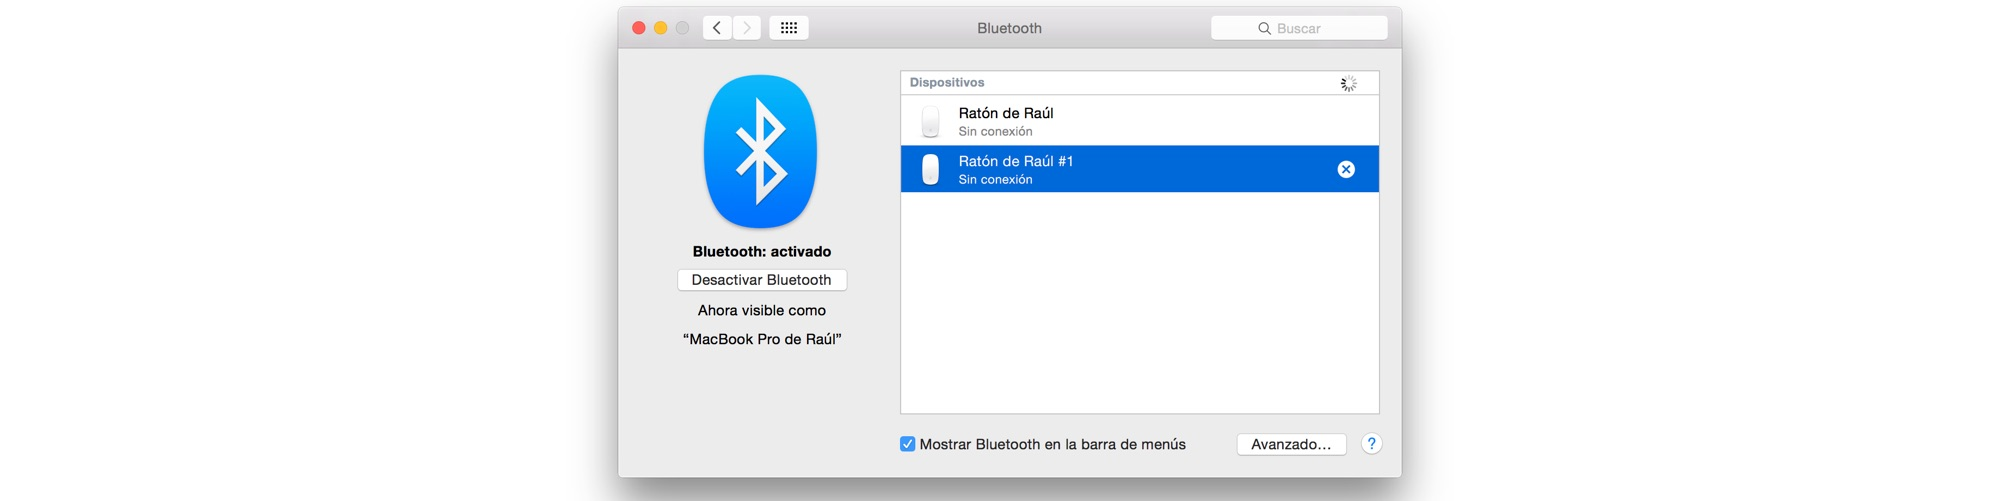 Se me ha roto el Magic Mouse bluetooth de Apple ¿qué hago?